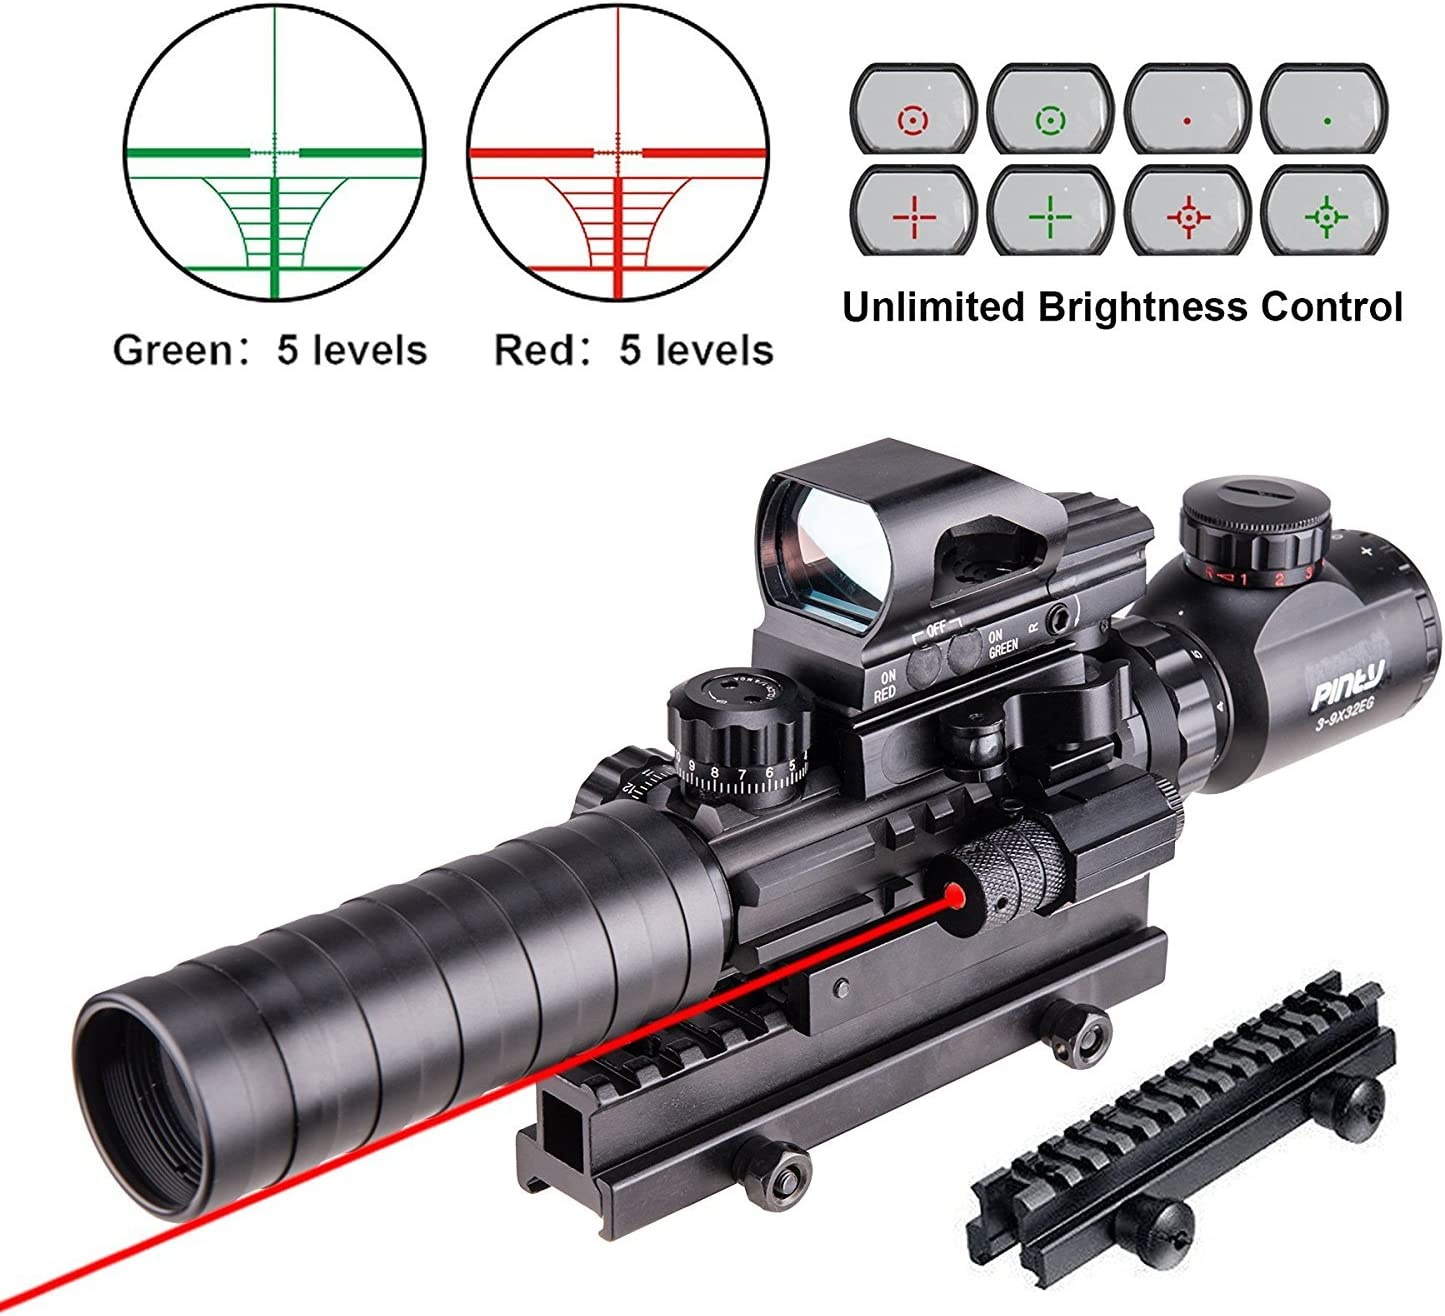 Pinty Rifle Scope 3-9×32 Rangefinder Illuminated Reflex Sight 4 Reticle Red Dot Laser Sight with 14 Slots 1 inch High Riser Mount